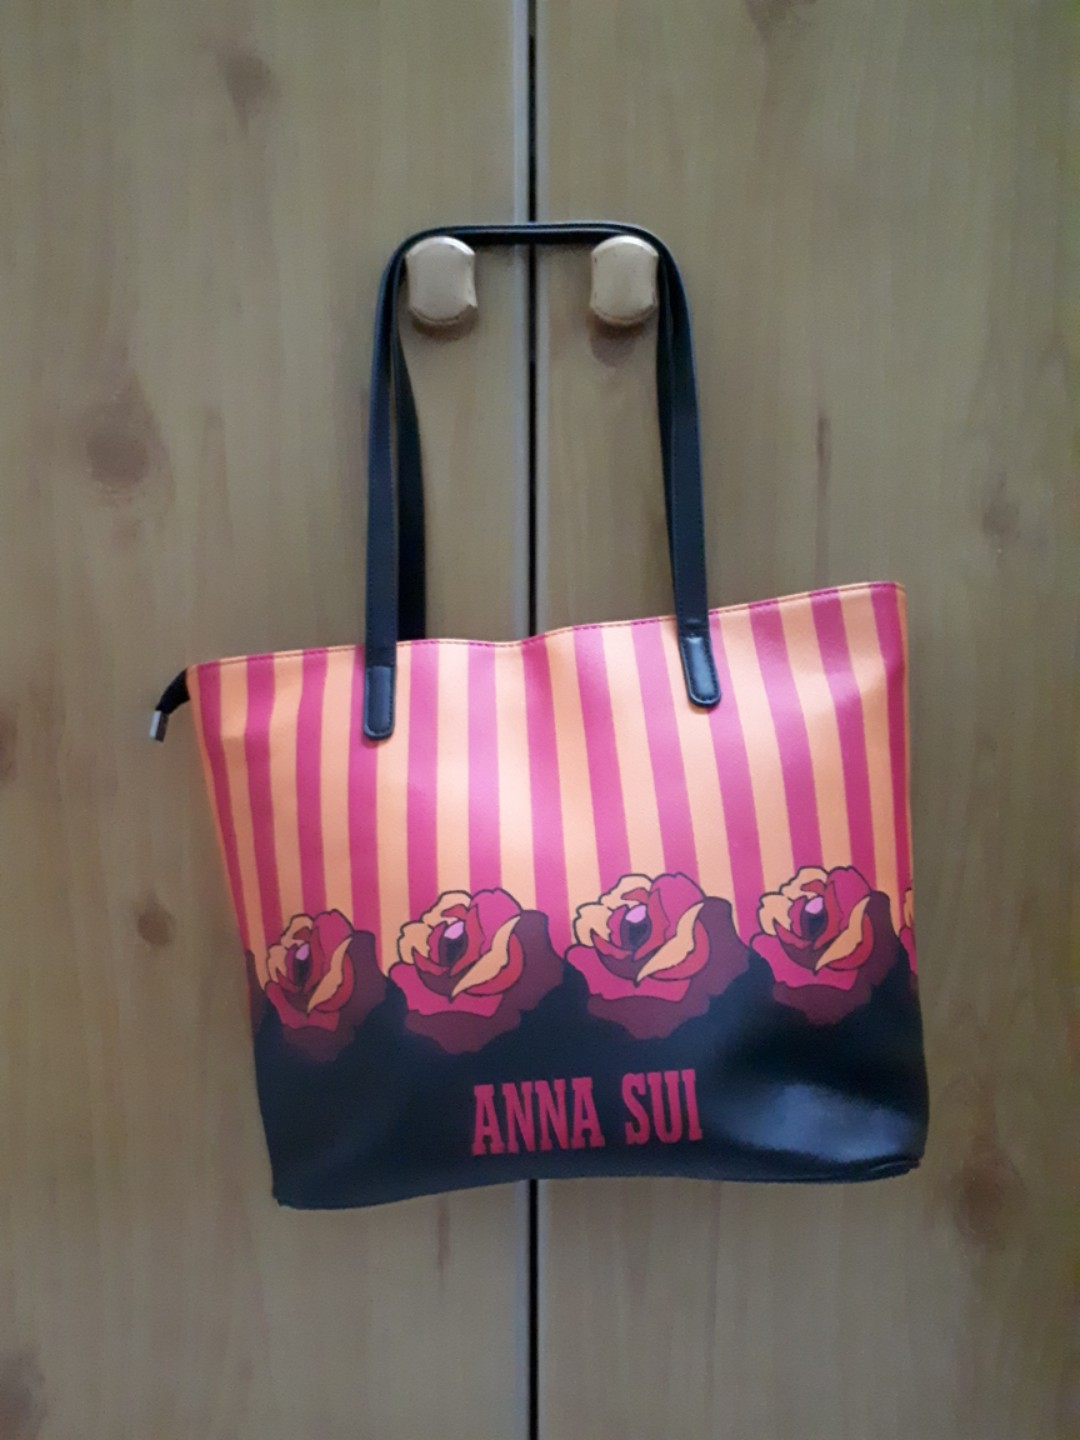 [REDUCED] Anna Sui Tote Bag